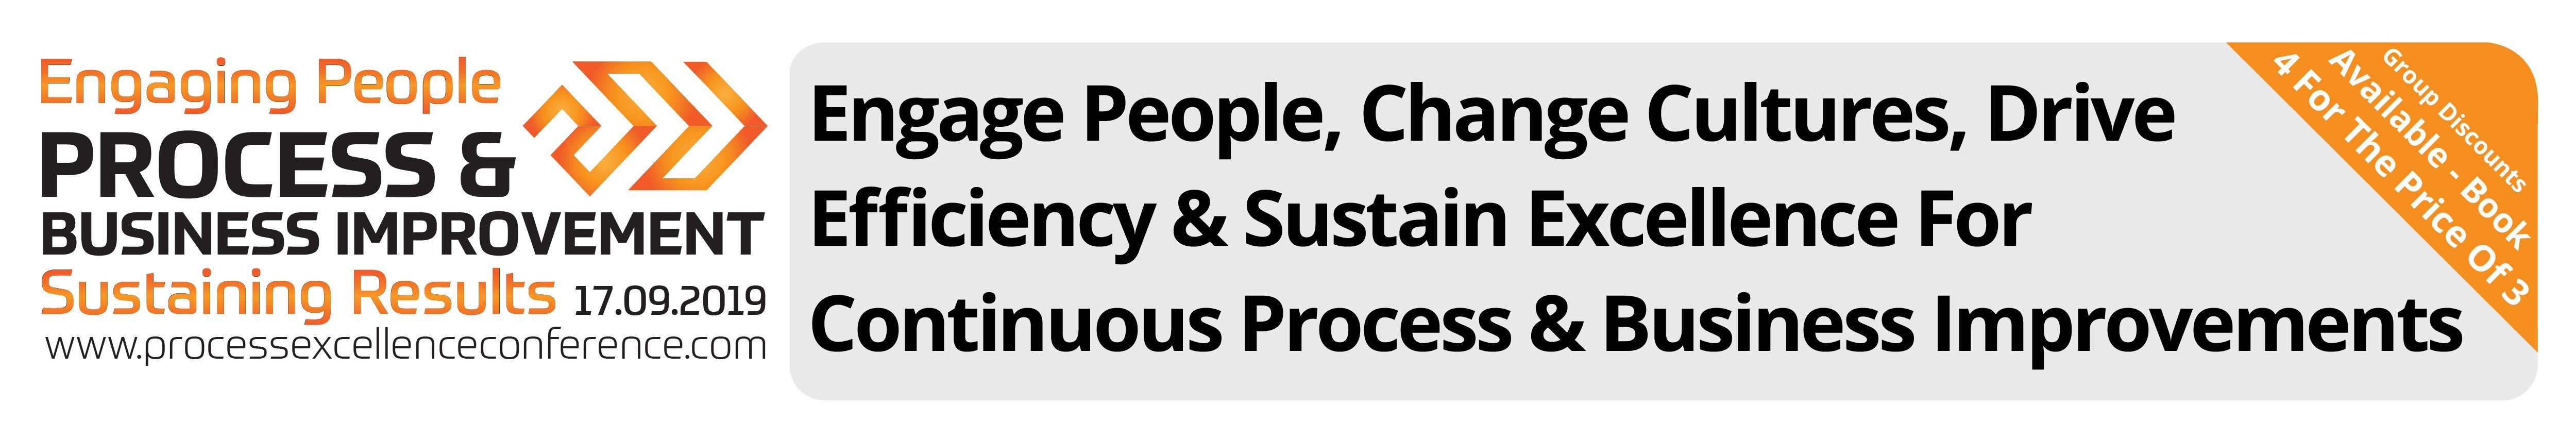 Process & Business Improvement Conference